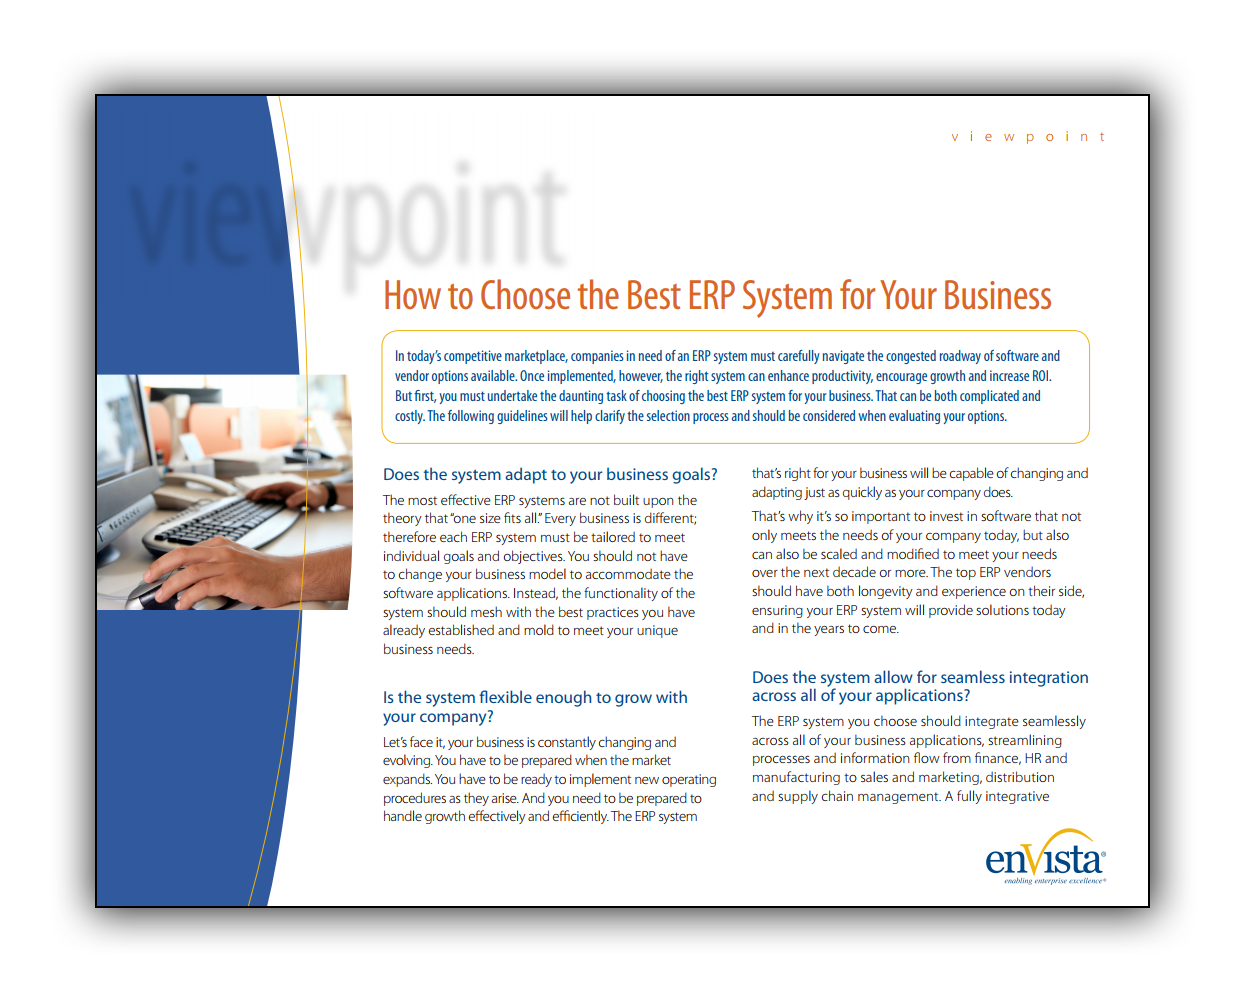 Image_how-to-choose-the-best-erp-system-for-your-business.png